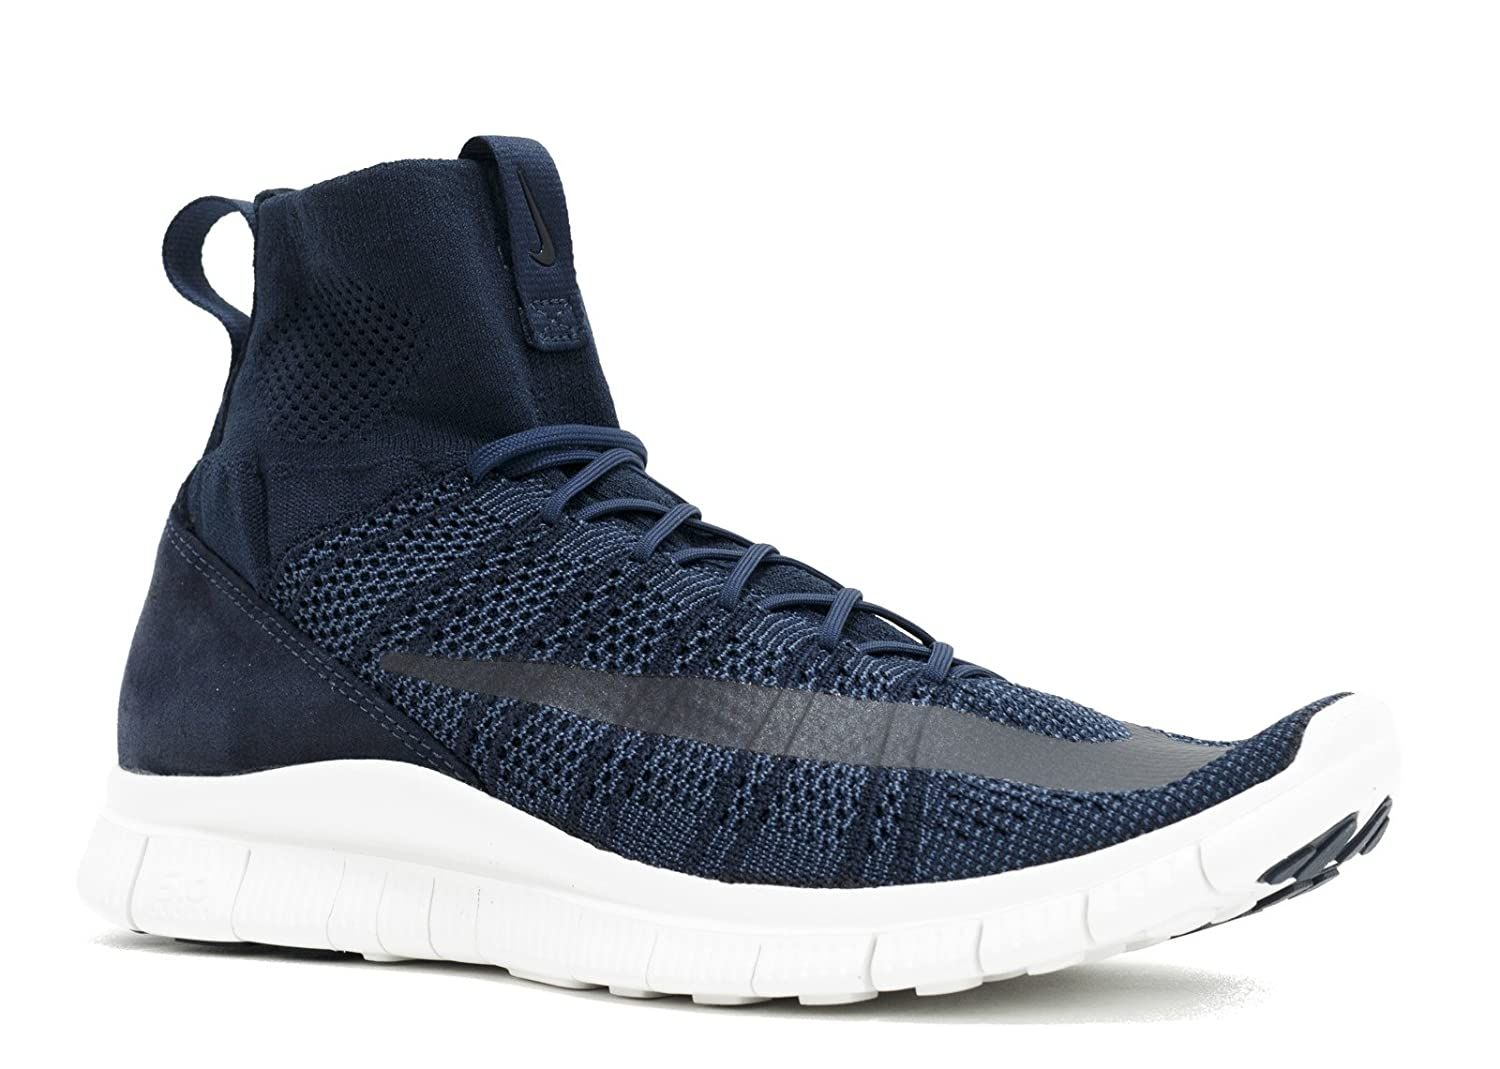 d326970829d9 Superfly SP Amazon.com Nike HTM Free Mercurial Superfly SP 667978-441 Dark  Obsidian White Men ...